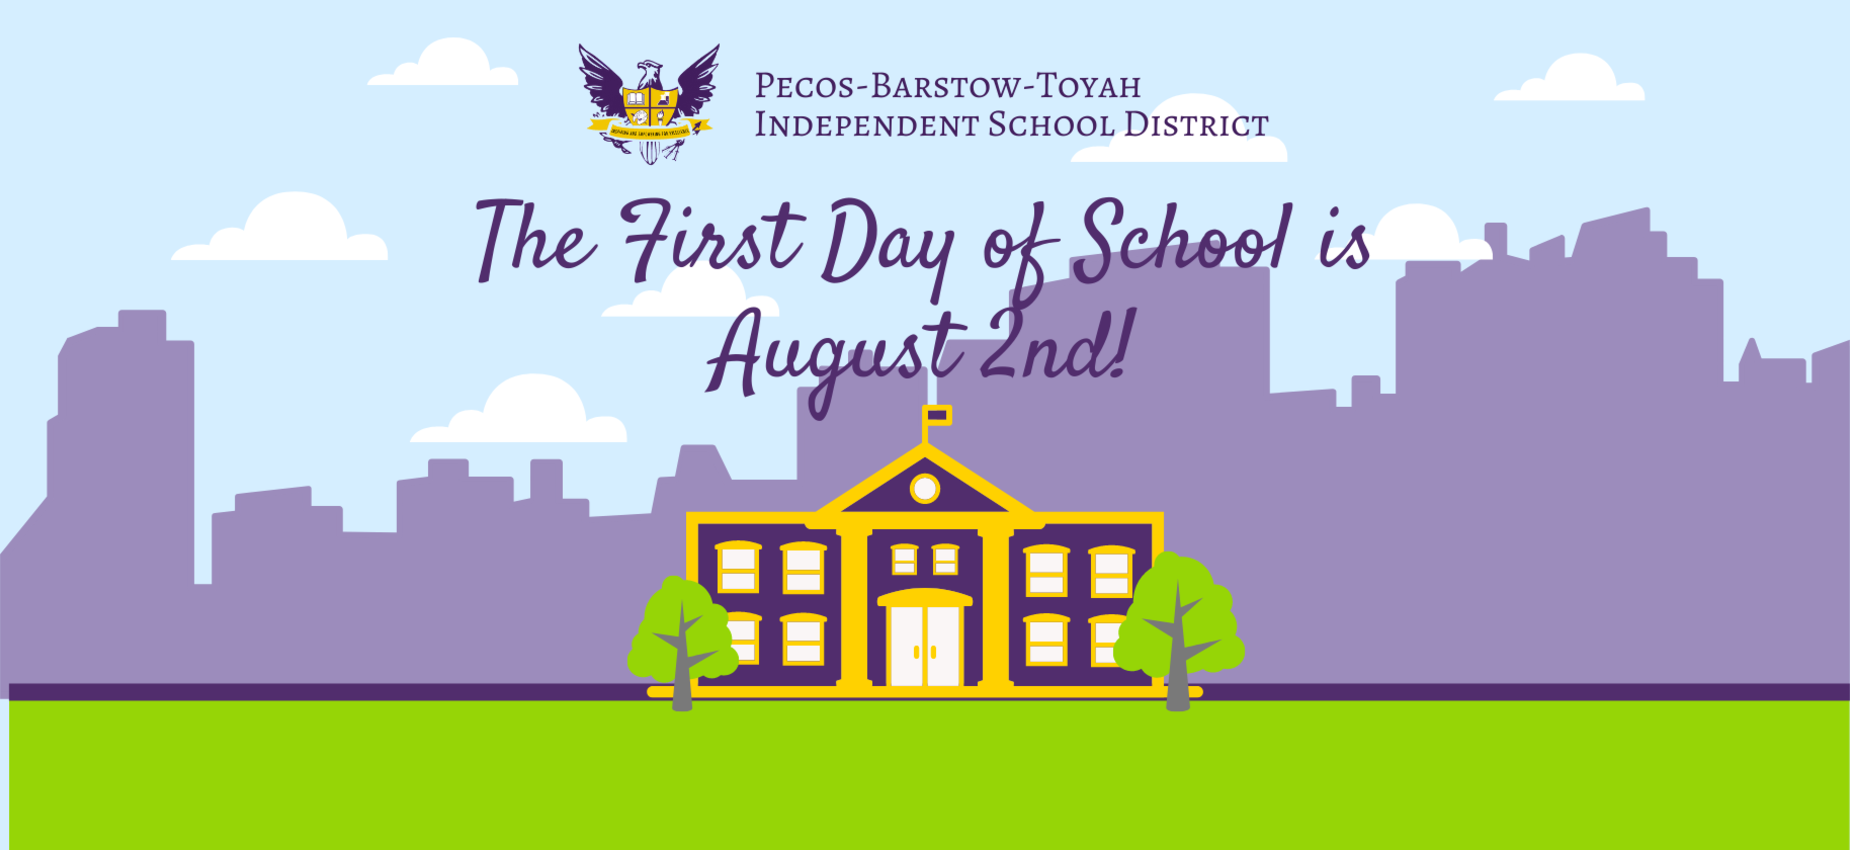 First Day of School August 2nd